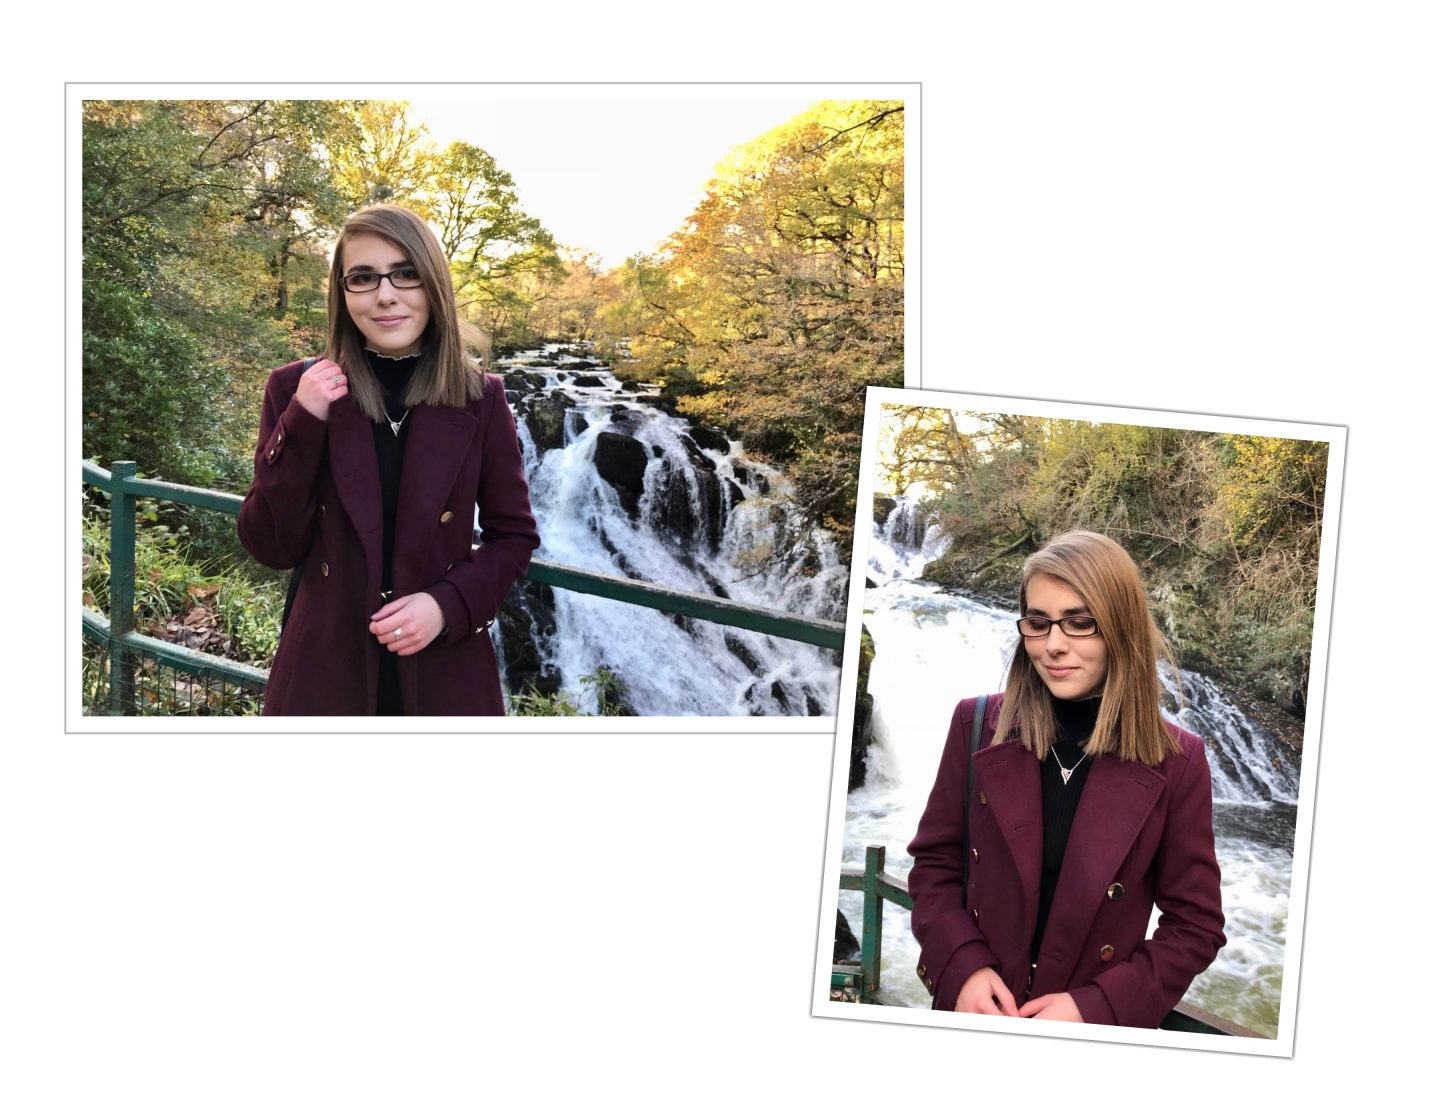 Two photos of Elin, she is looking at the camera in one and is looking down in another